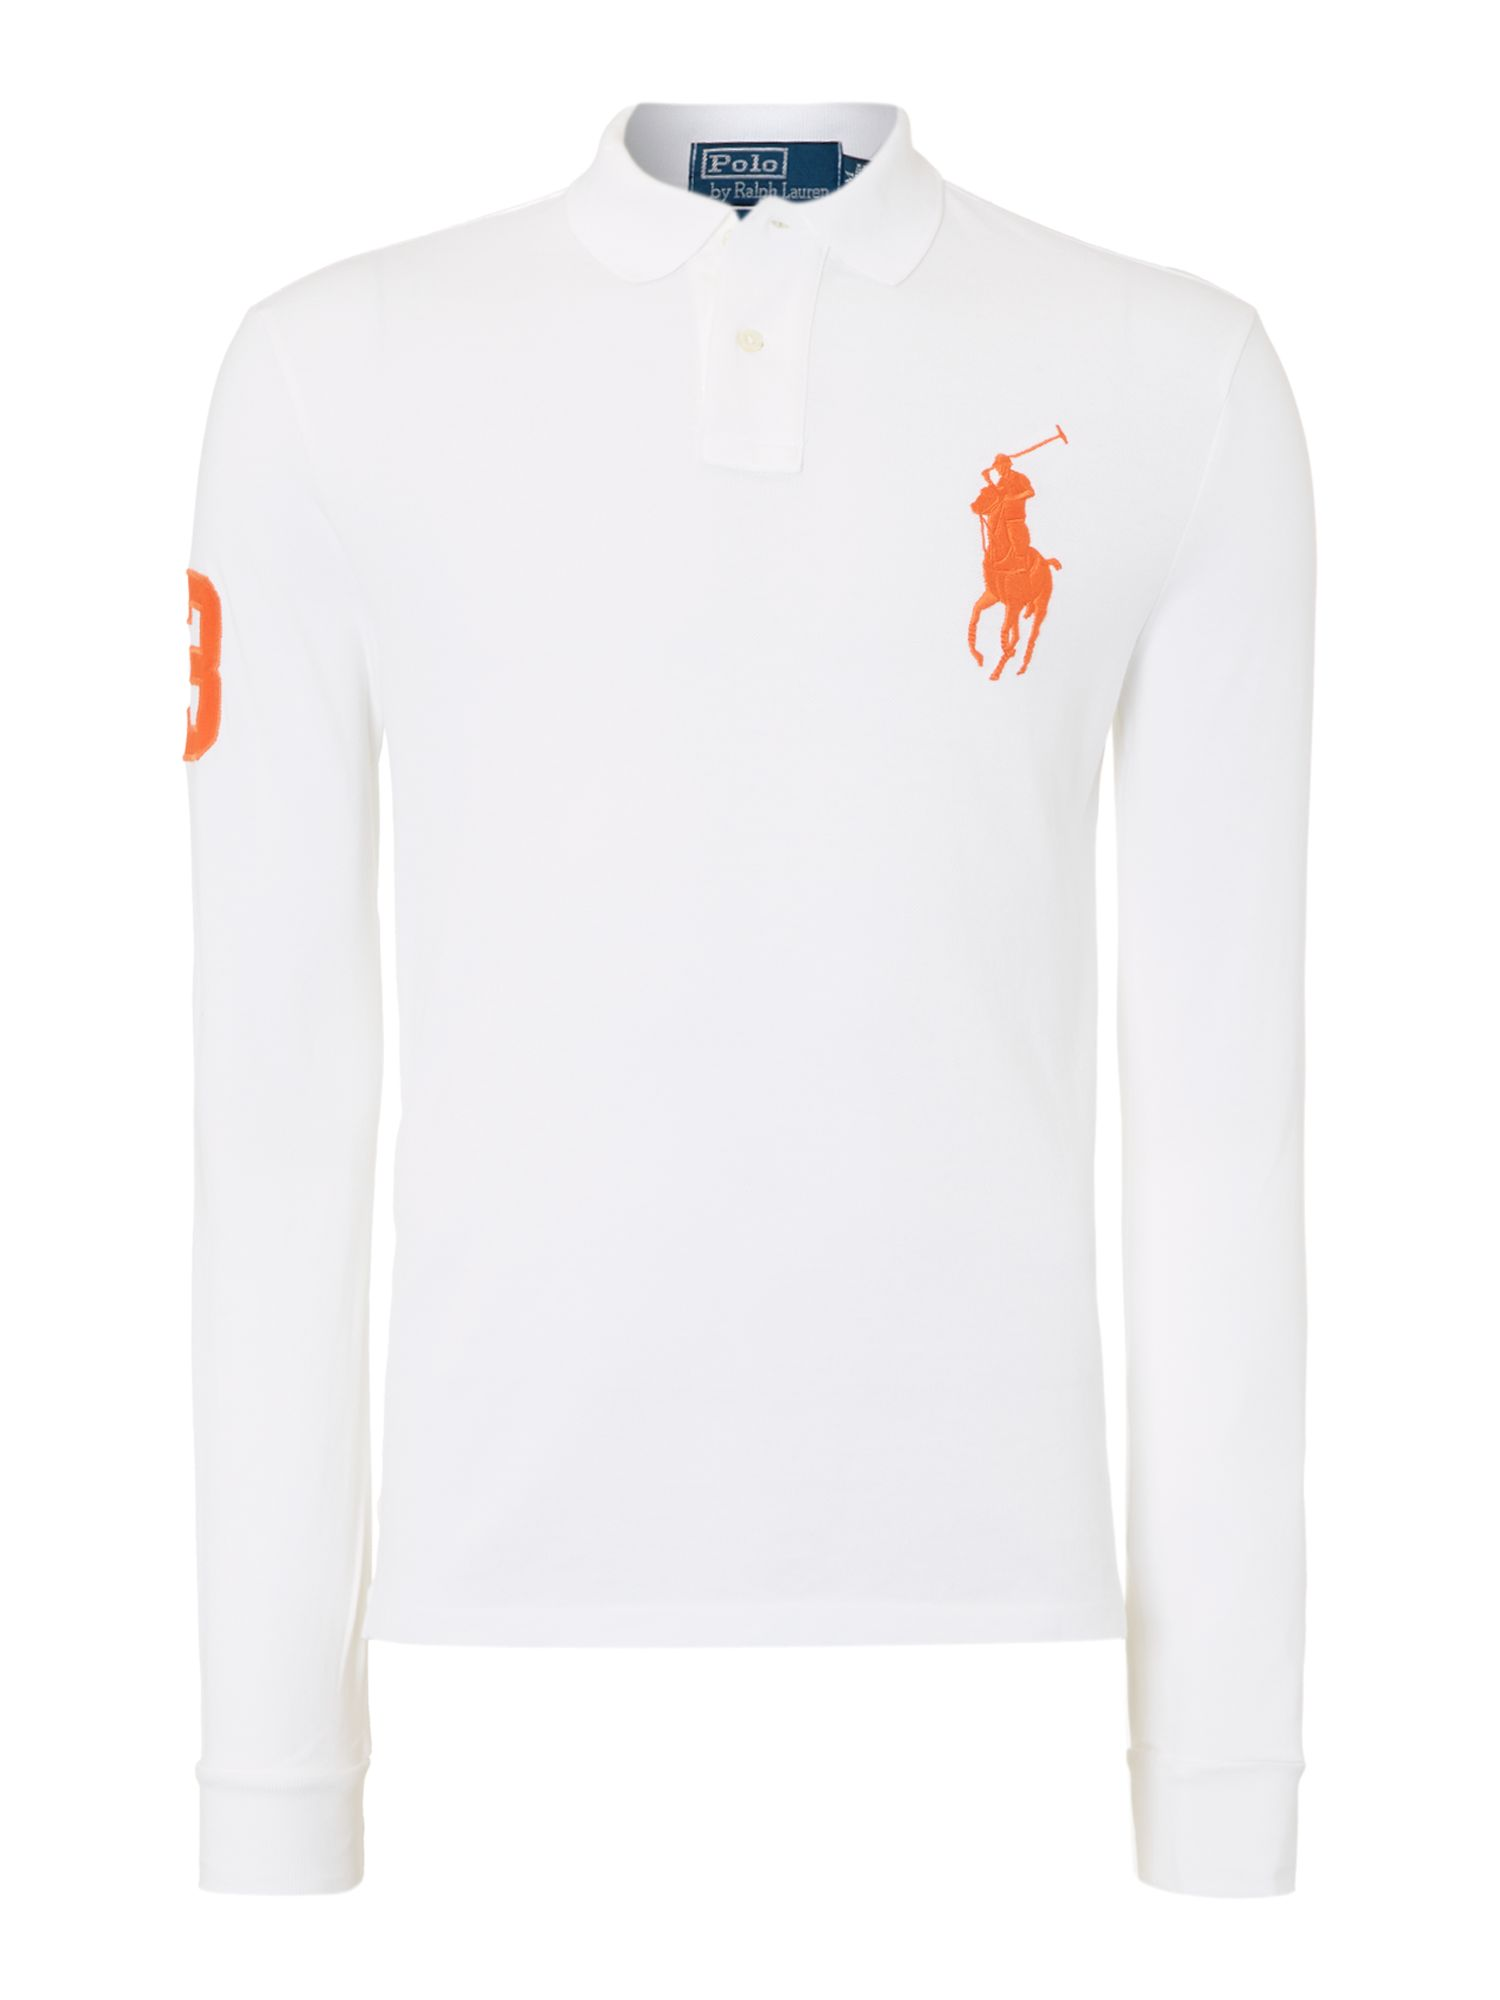 Custom fit long sleeve polo shirt